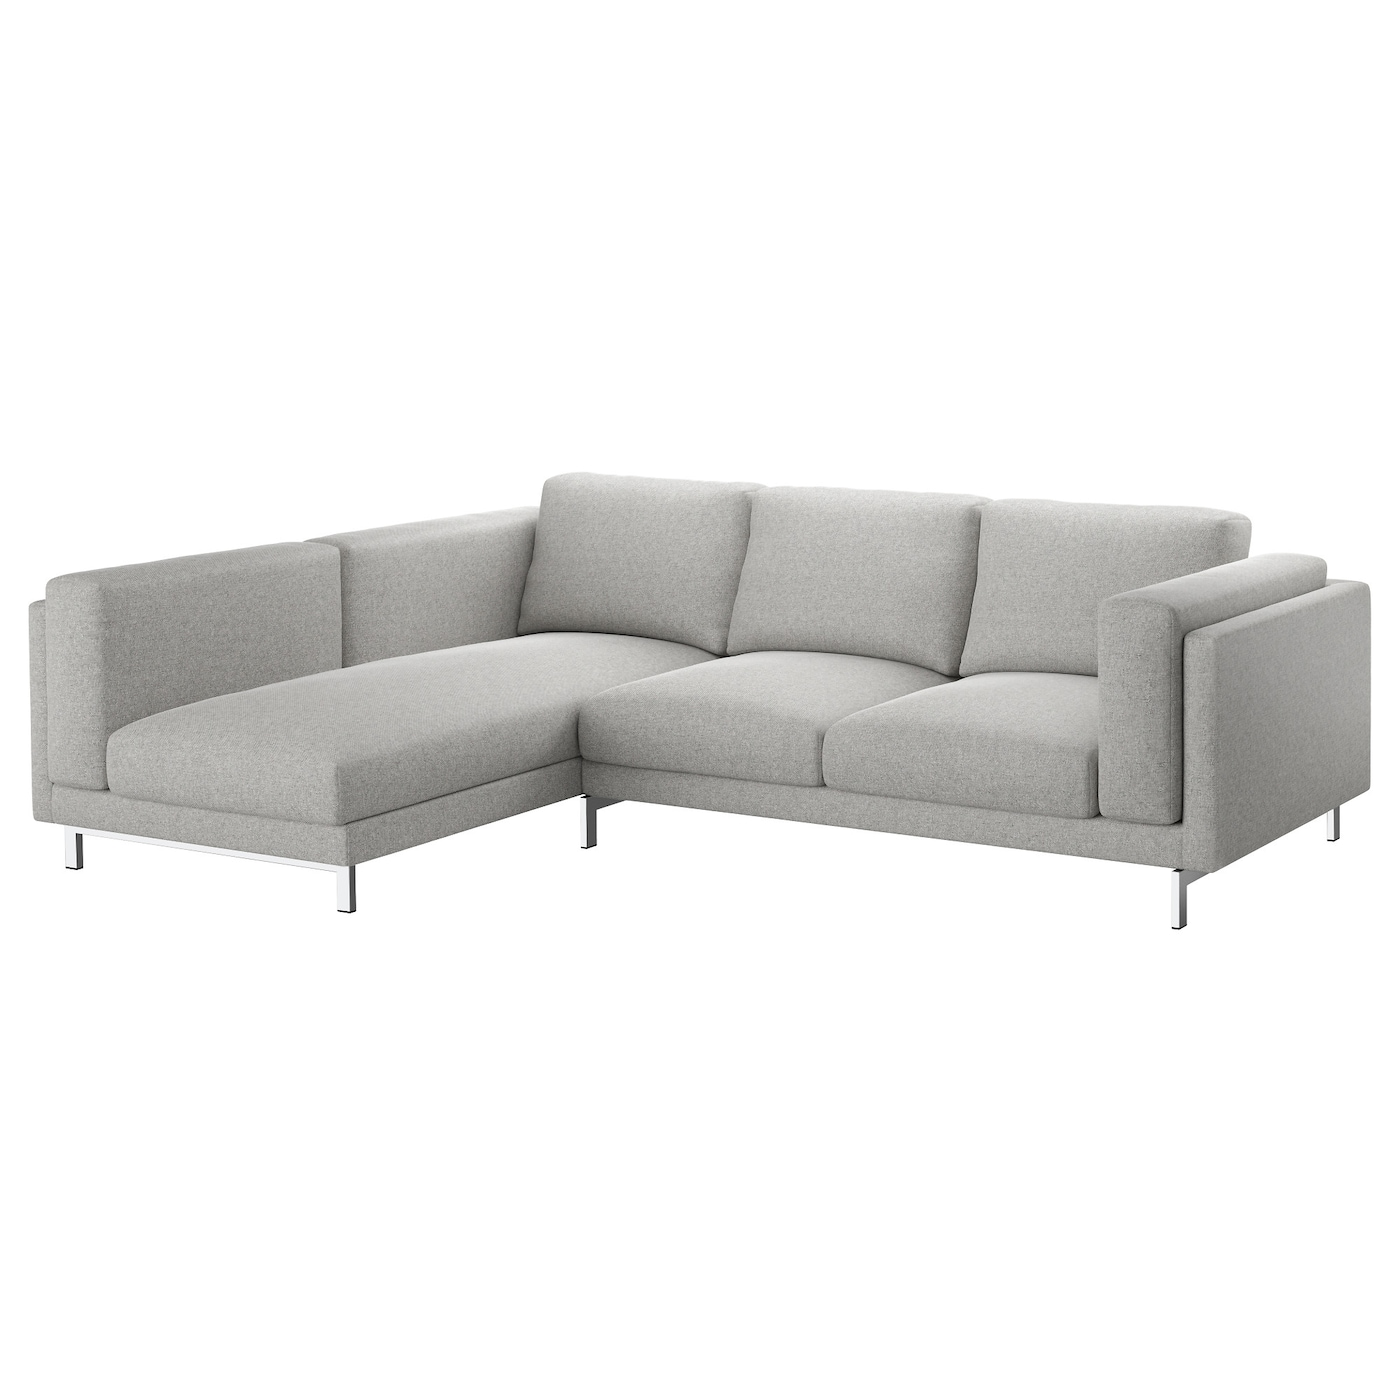 nockeby 3 seat sofa with chaise longue left tallmyra white black chrome plated ikea. Black Bedroom Furniture Sets. Home Design Ideas